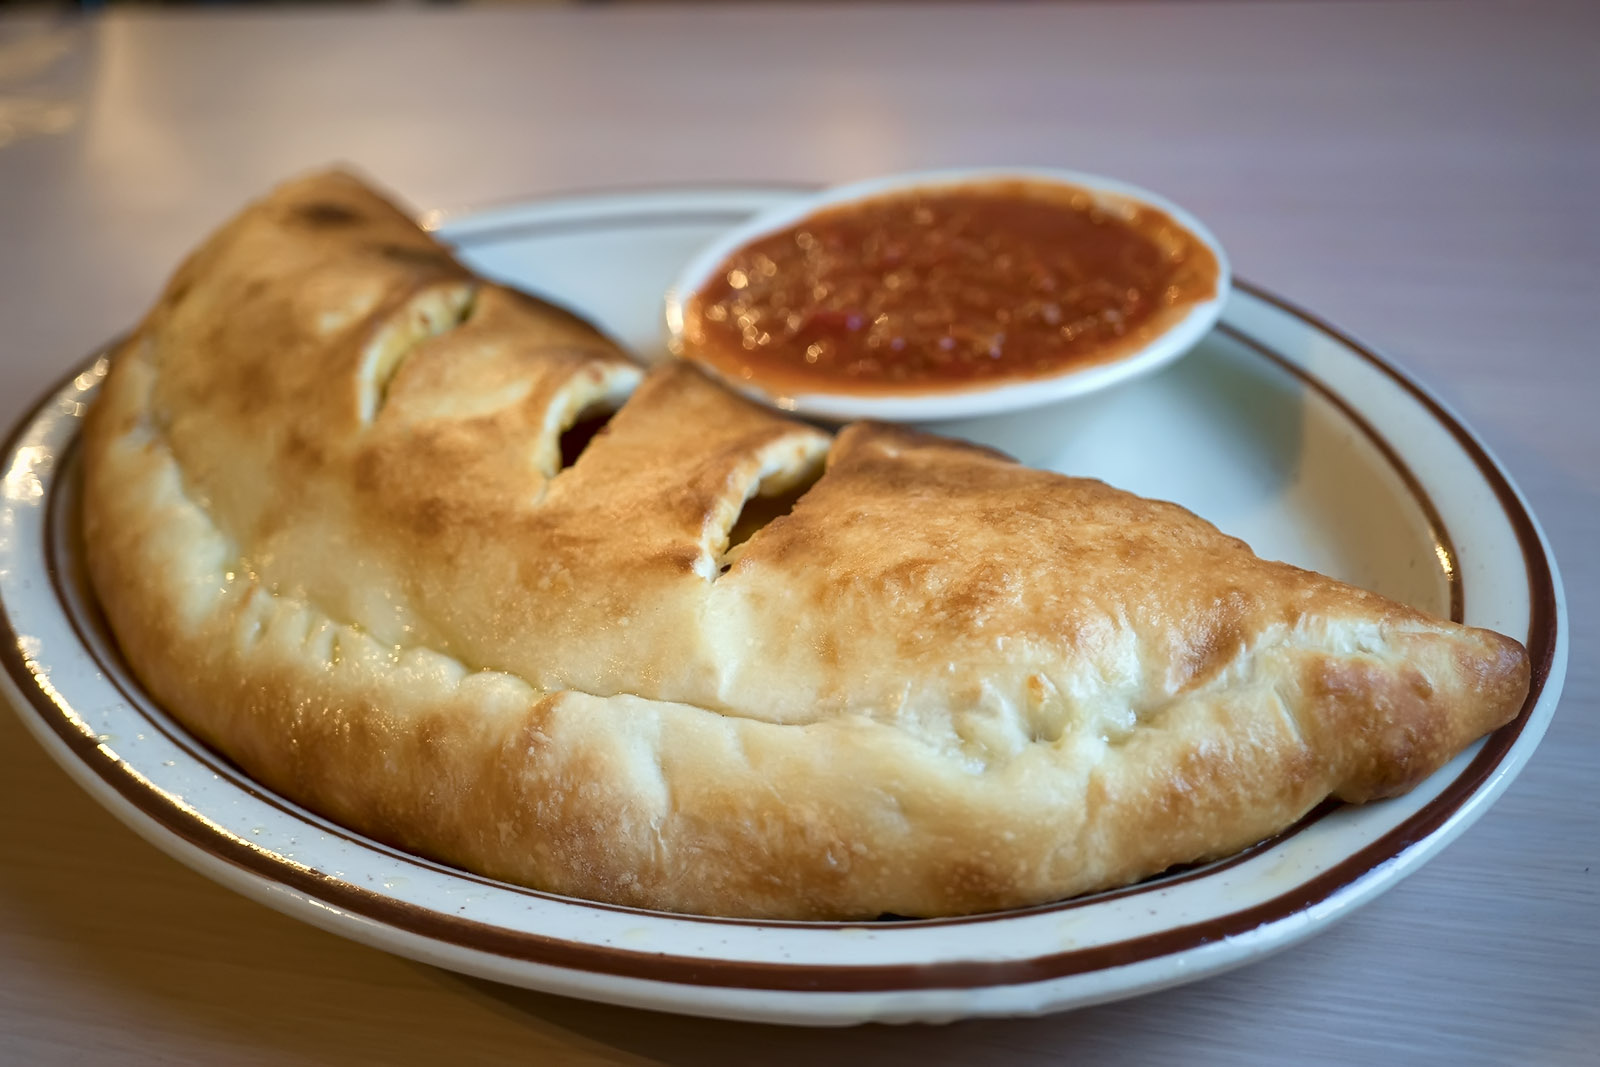 Cheese Stromboli Image